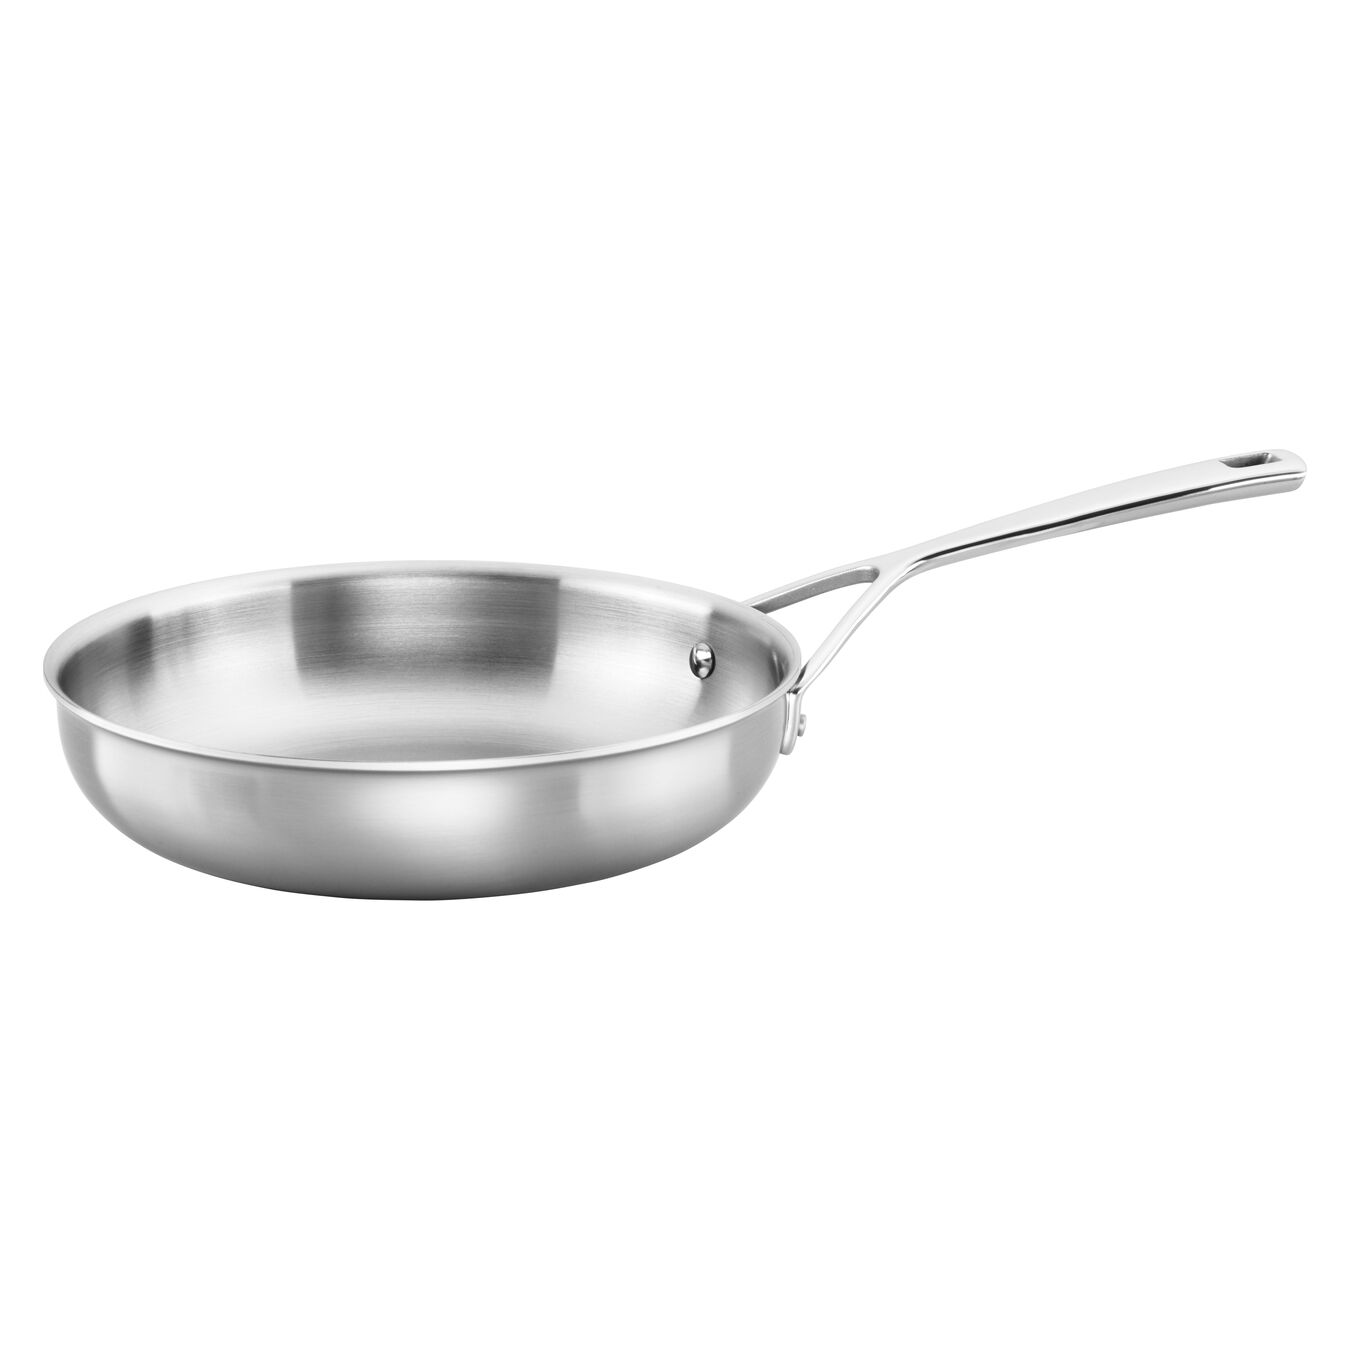 5 Ply, 18/10 Stainless Steel, 9.5-inch, Frying pan,,large 2